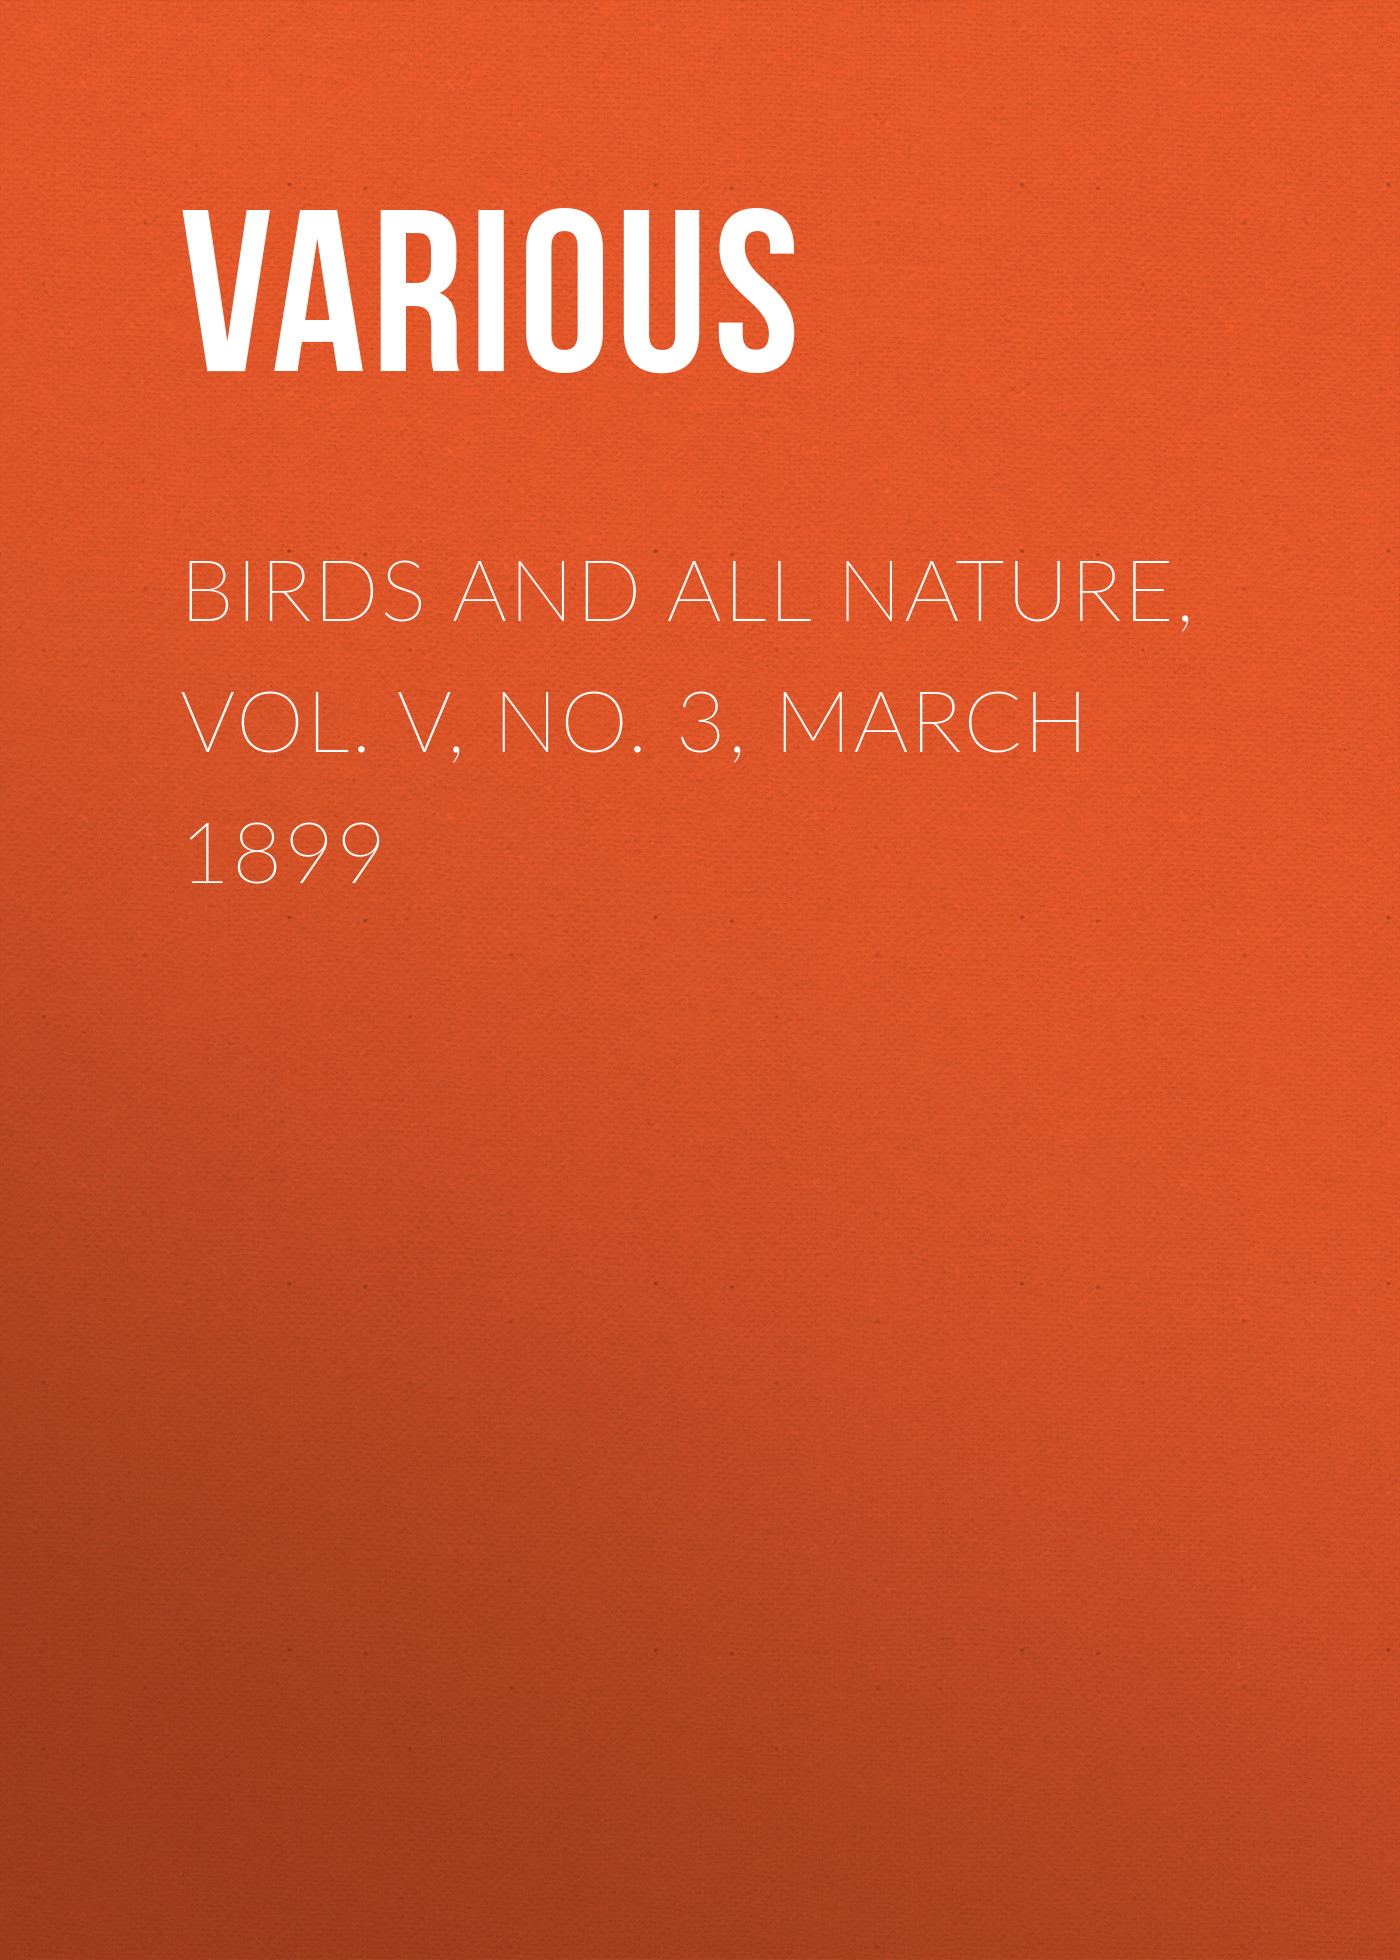 все цены на Various Birds and All Nature, Vol. V, No. 3, March 1899